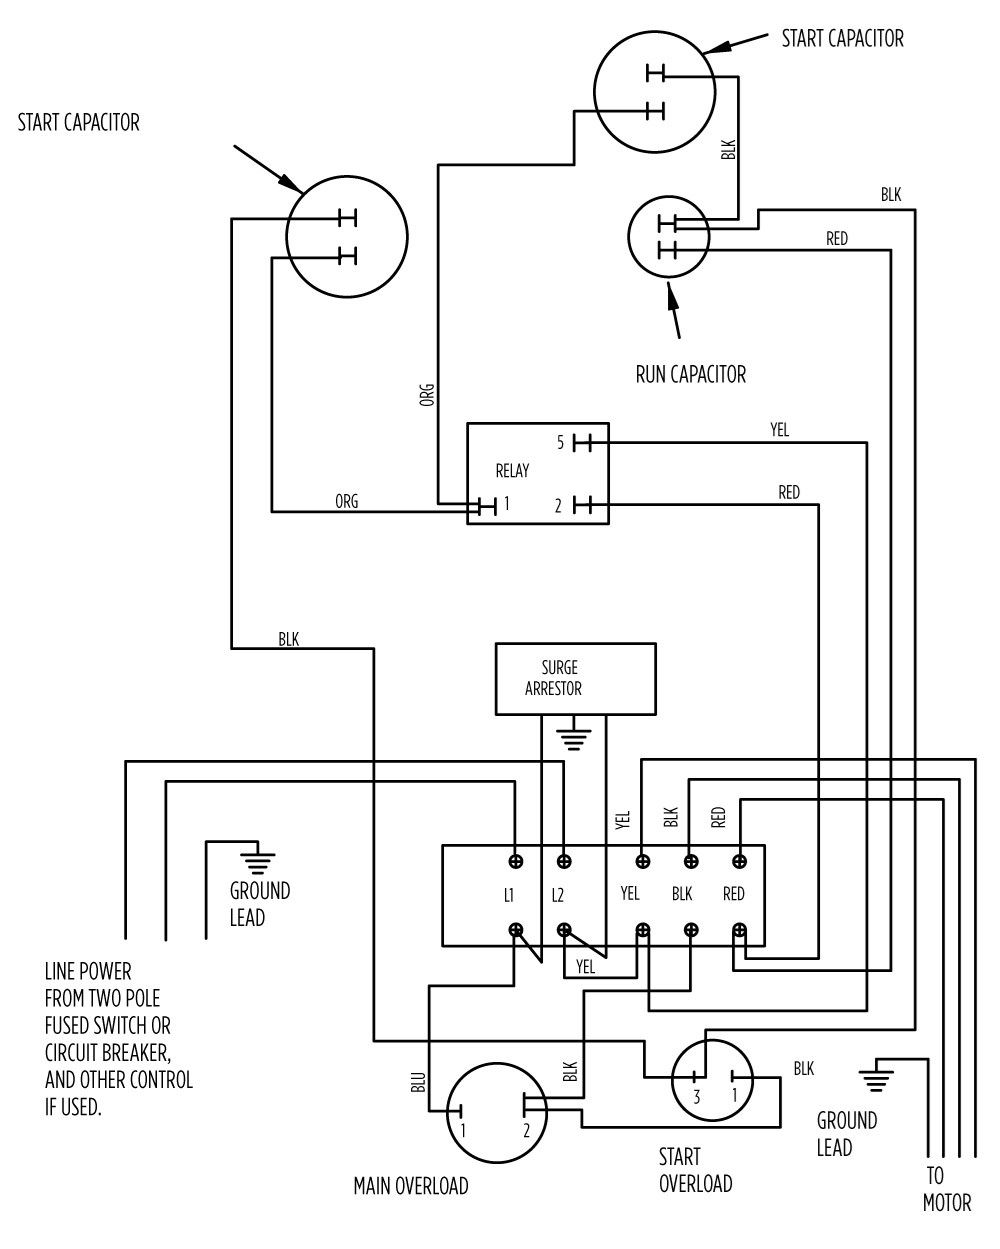 Motor Wiring Diagram Likewise 3 Phase Control On 5 Hp Well Pump Box Library 75 Standard 282 201 9210